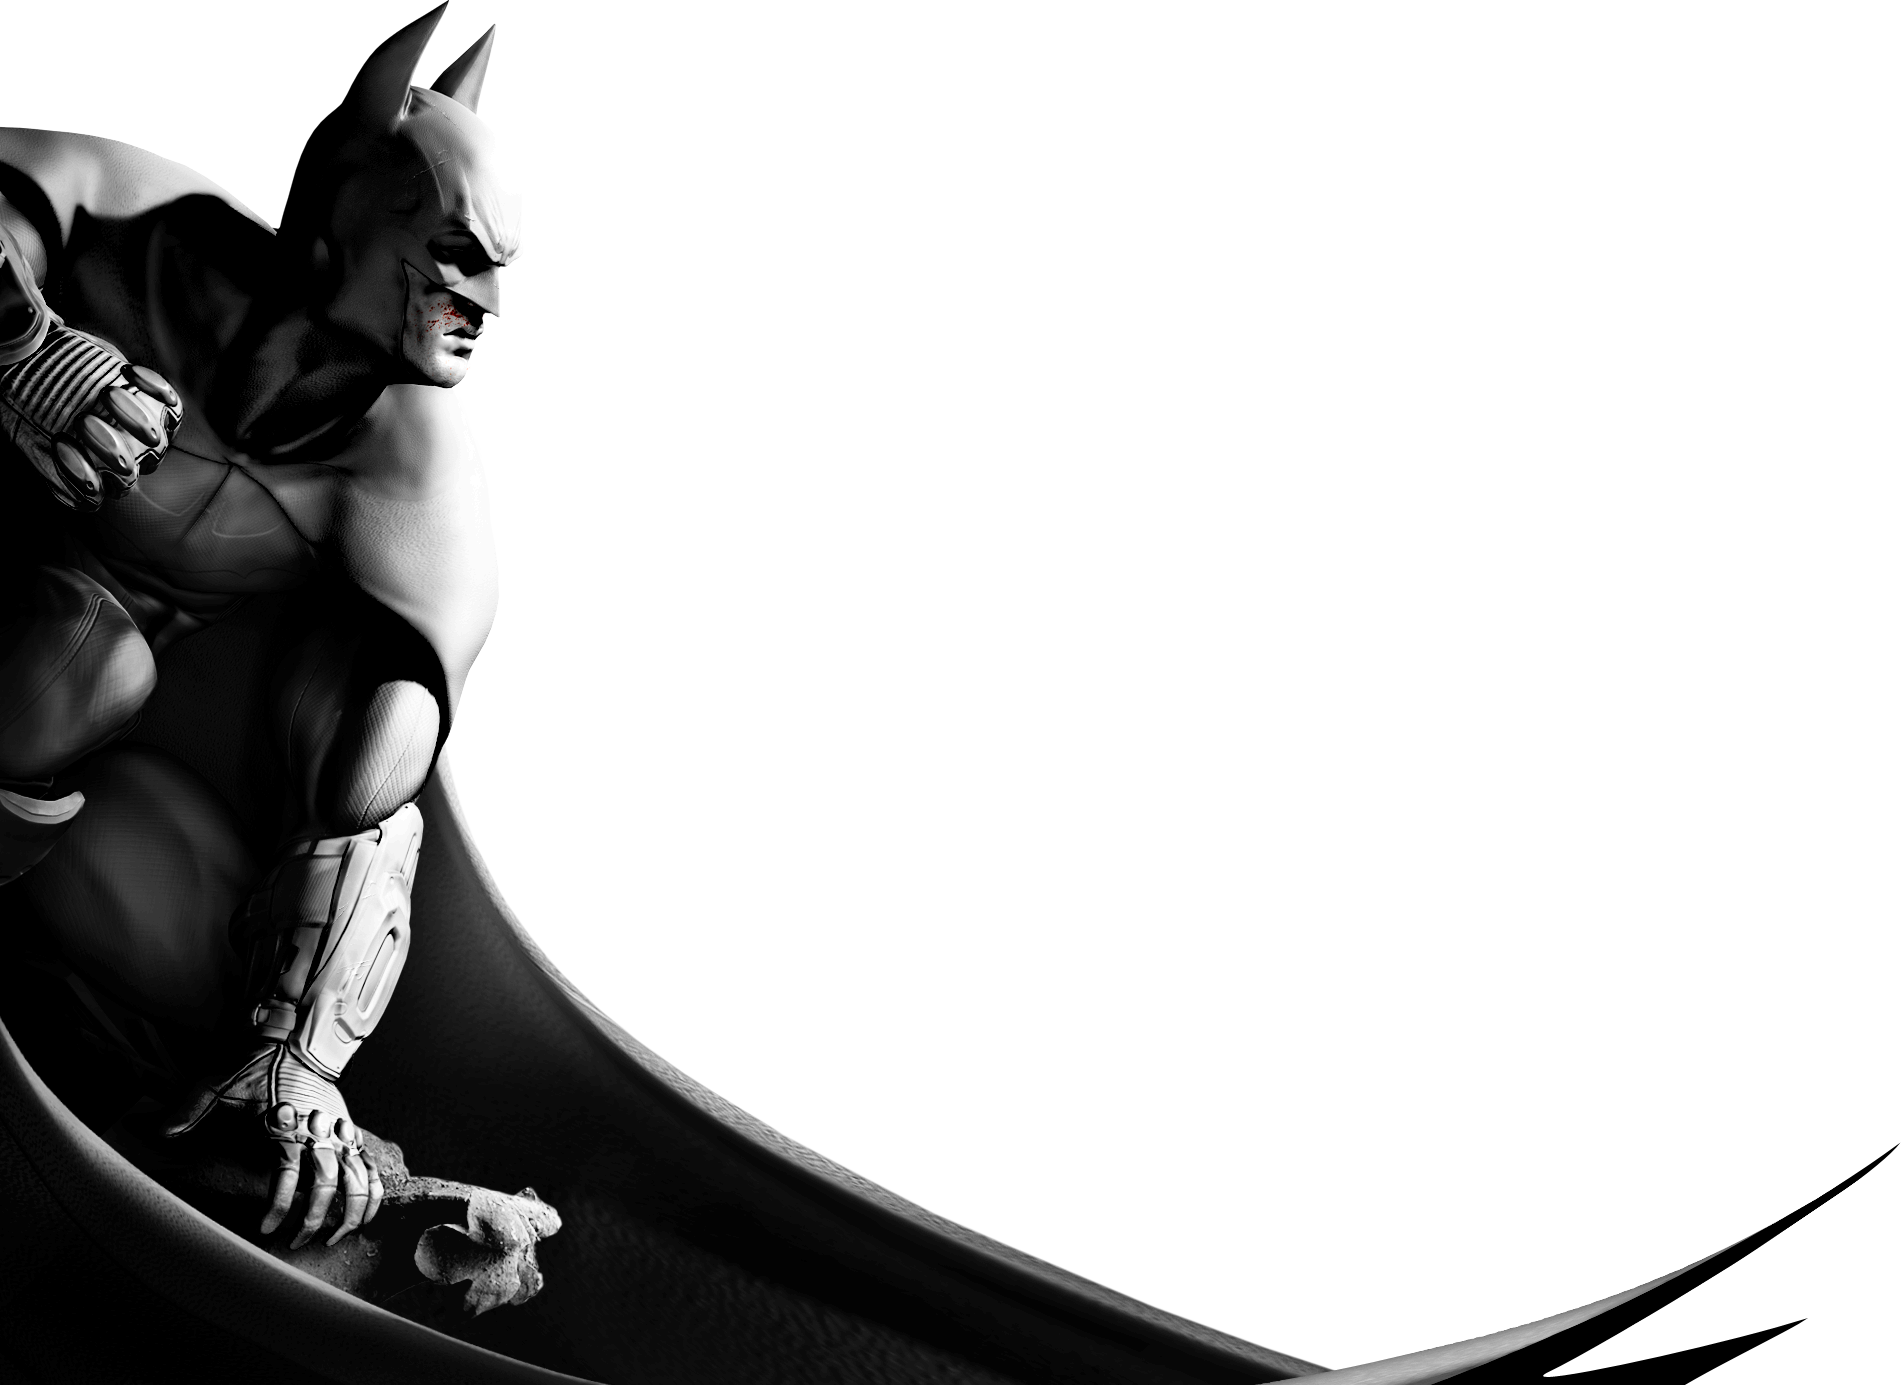 Batman HD PNG - 119525